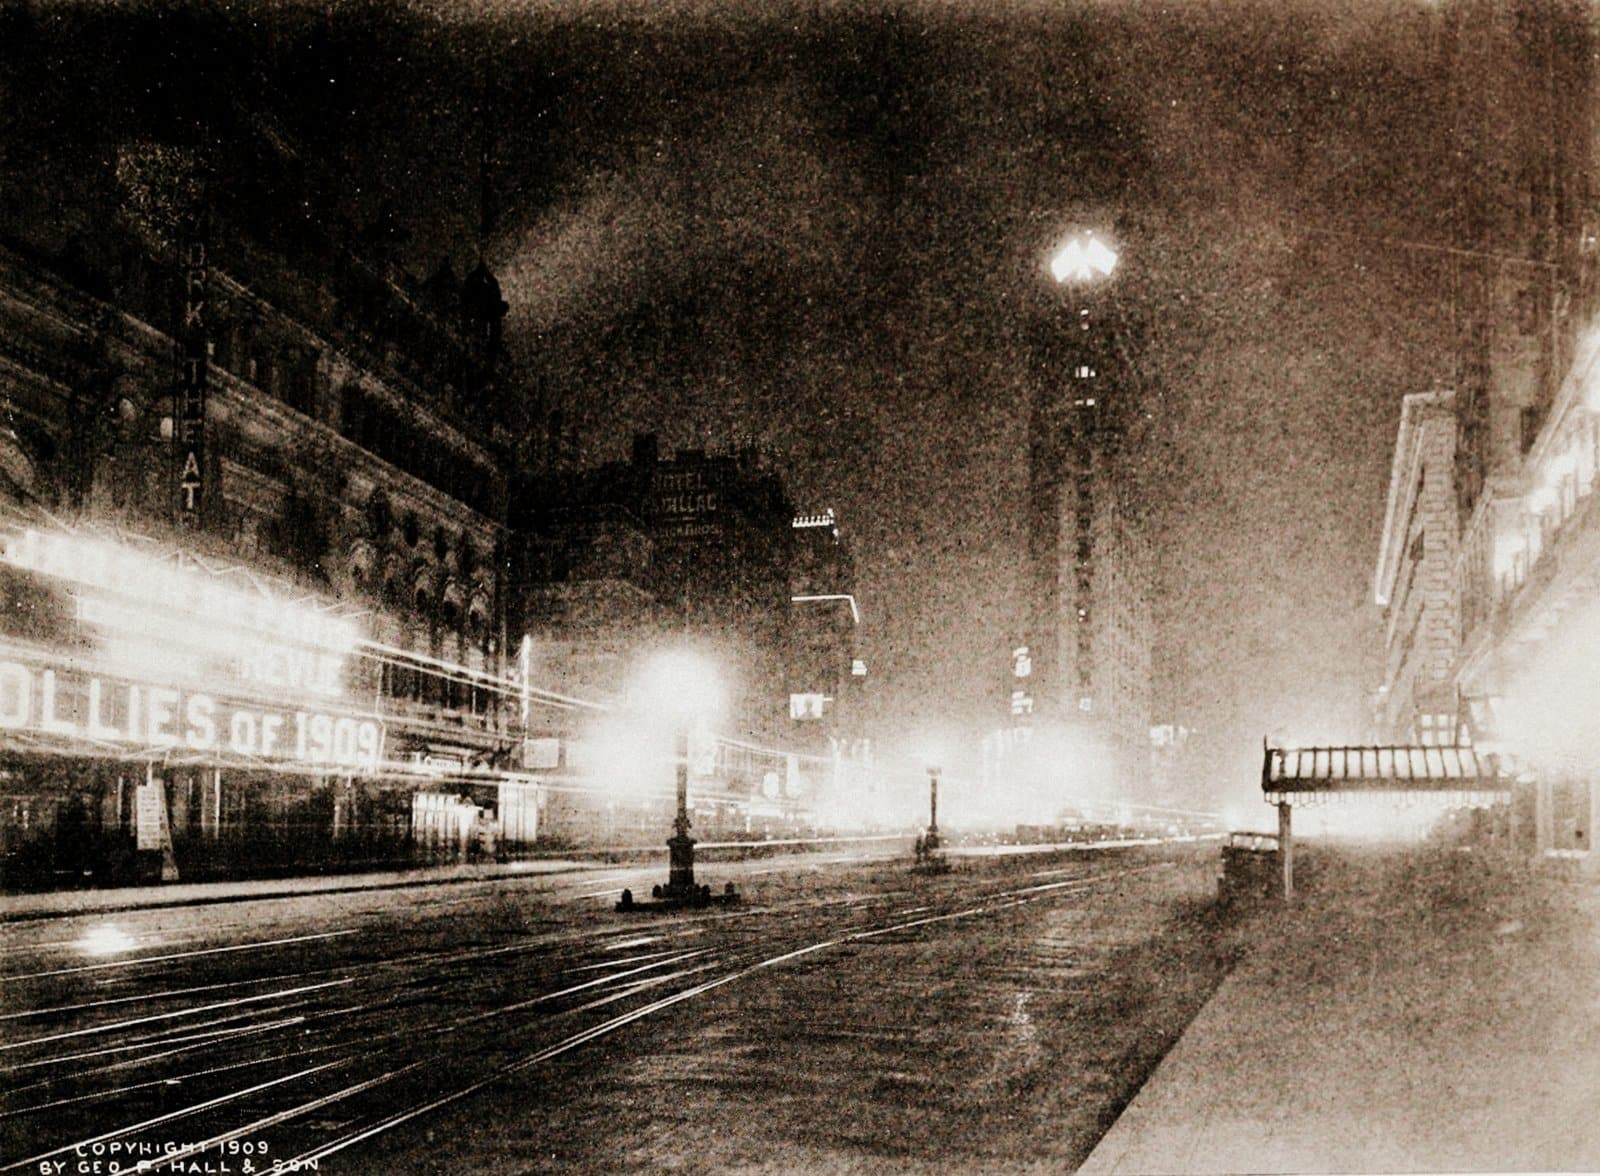 Broadway's midnight sun - Photos of old NYC from 1909 (2)